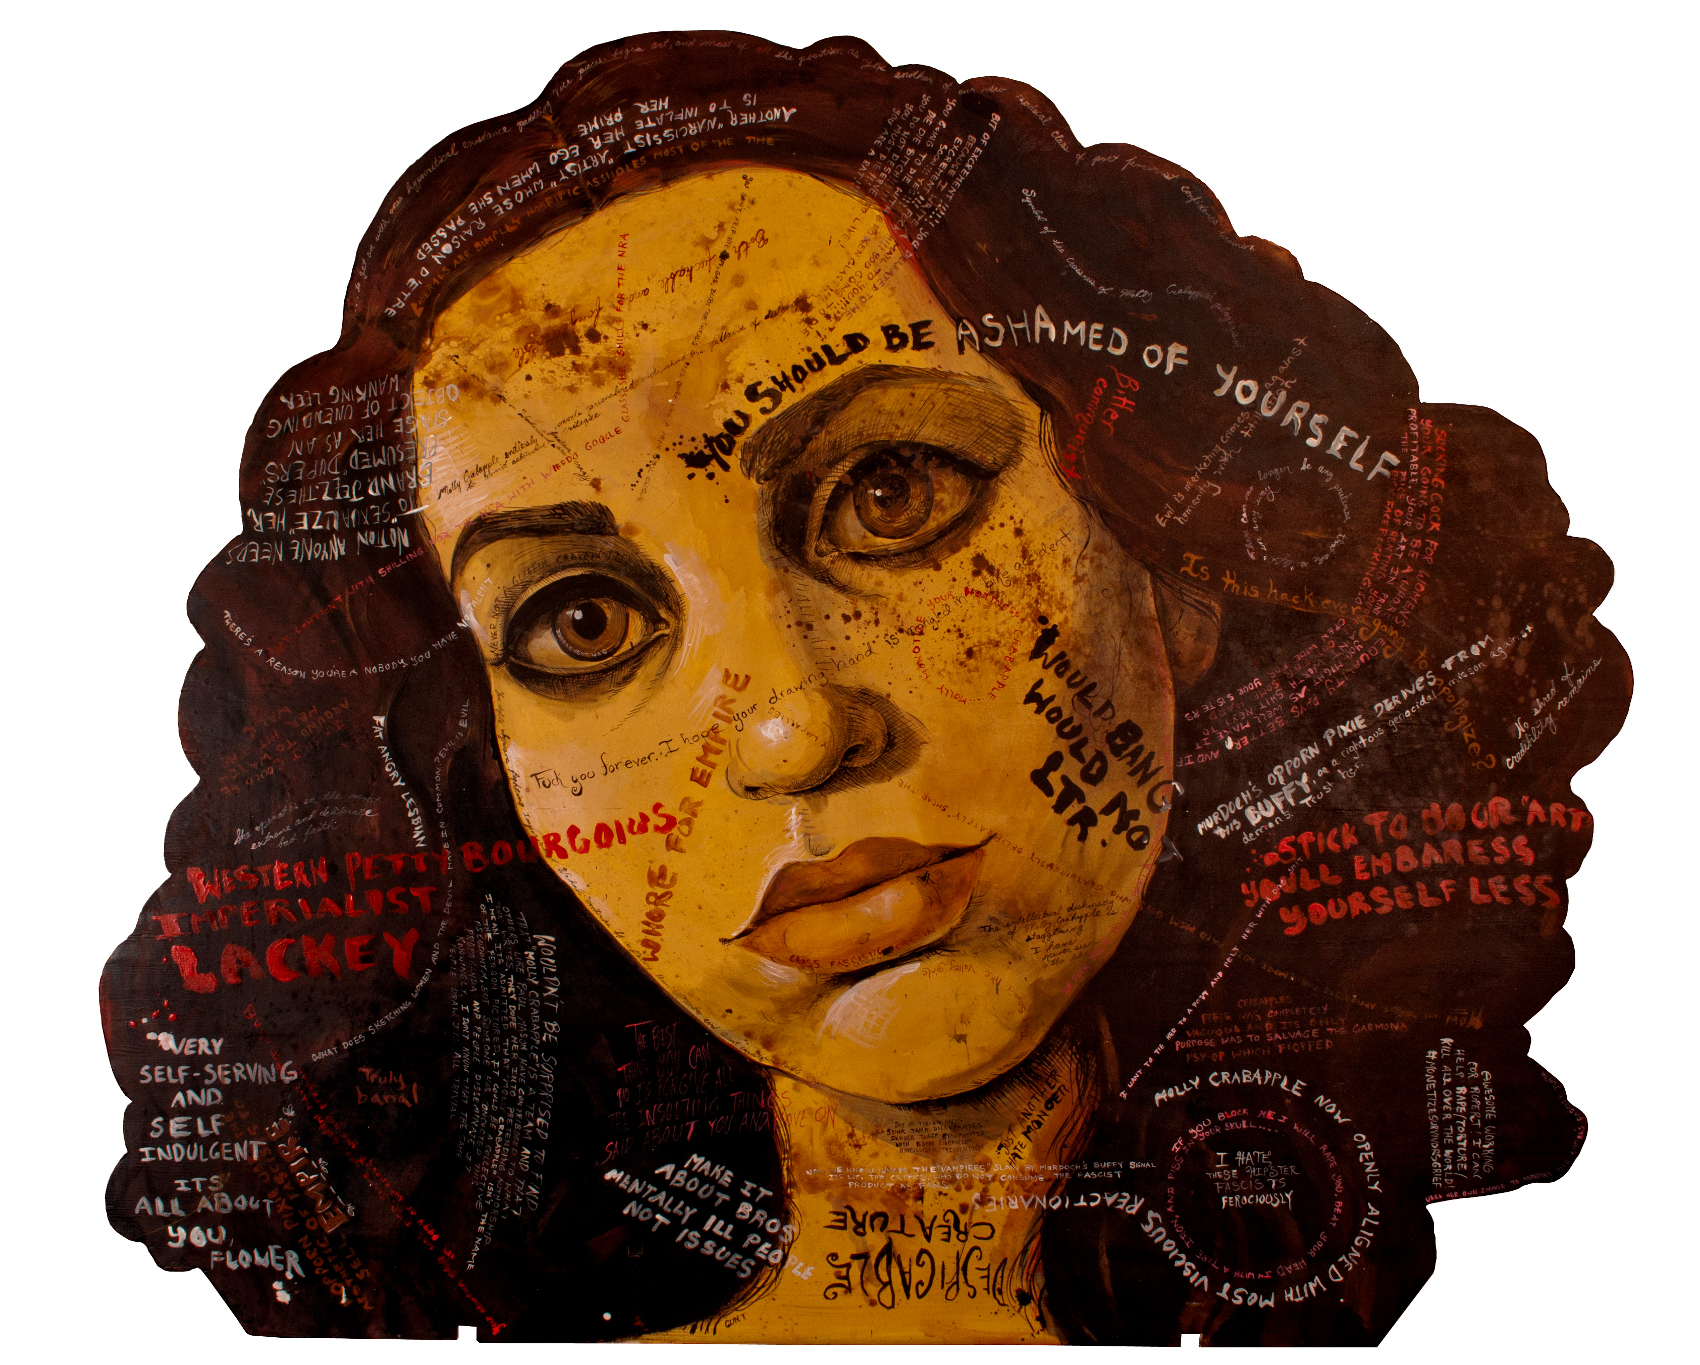 Molly Crabapple's 15 rules for creative success in the Internet age